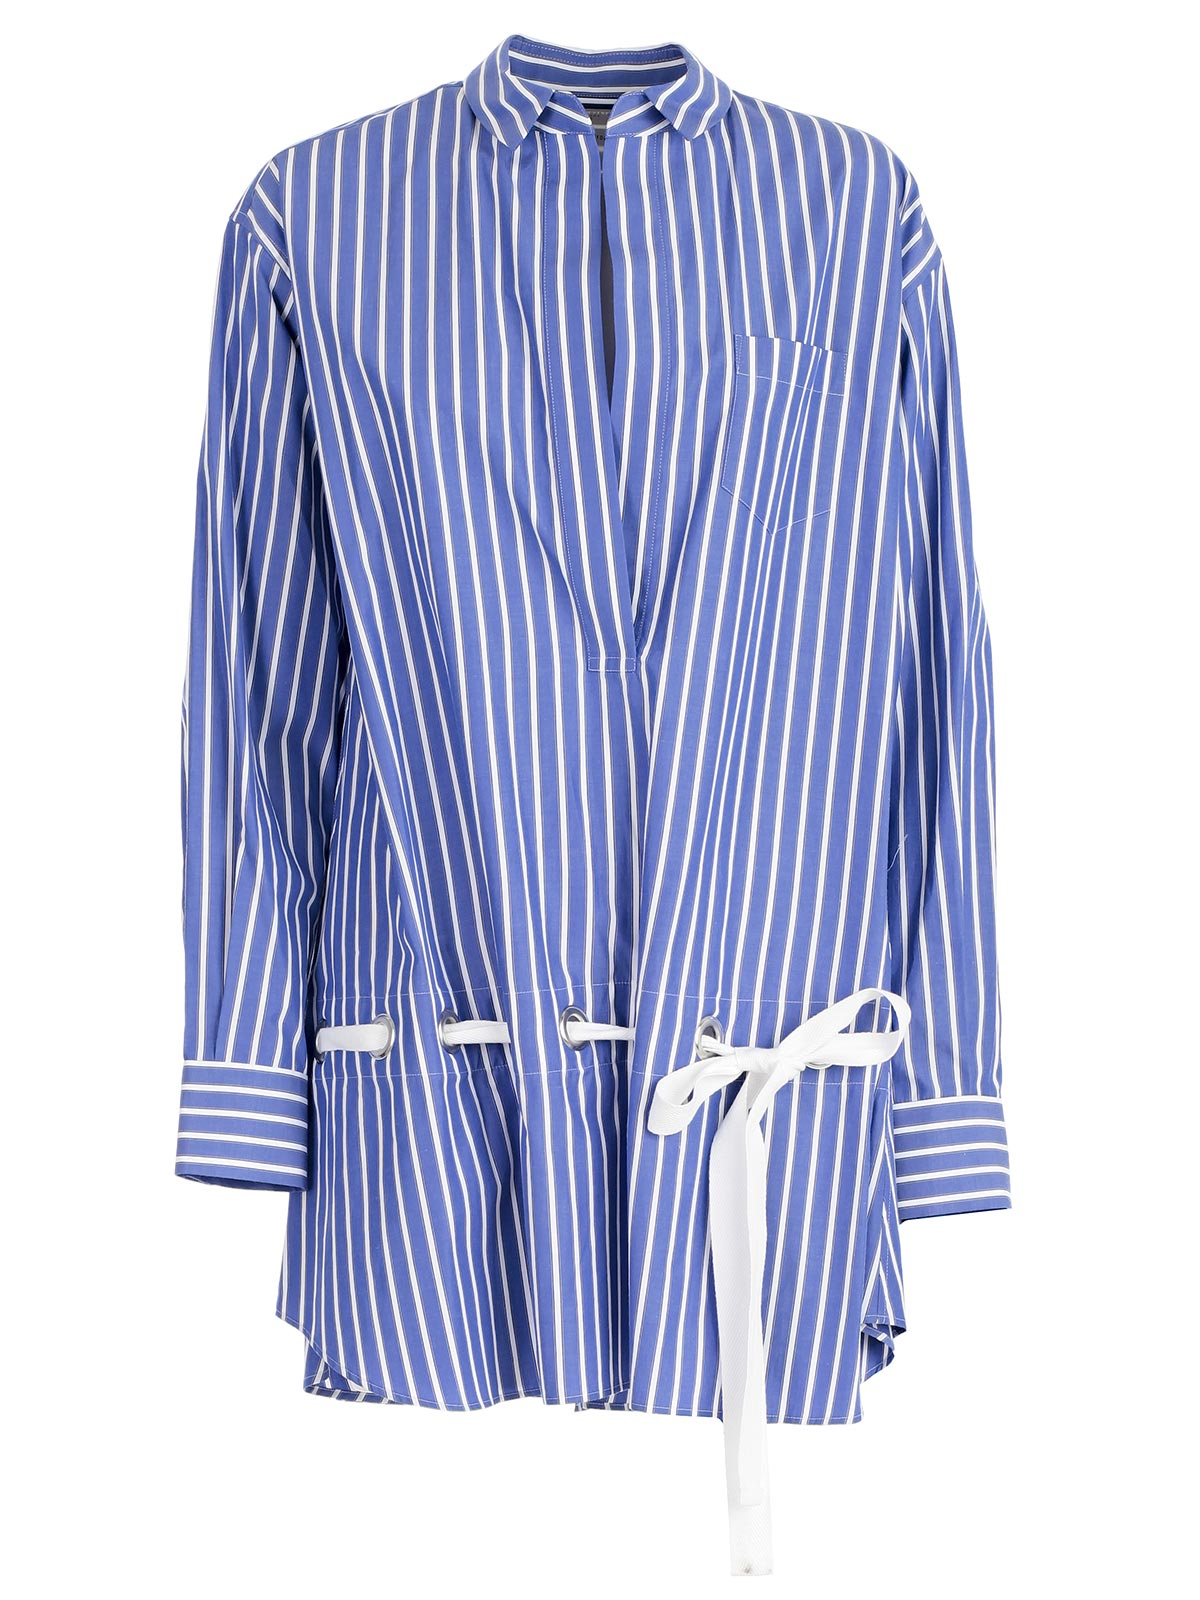 Picture of SACAI SHIRTS